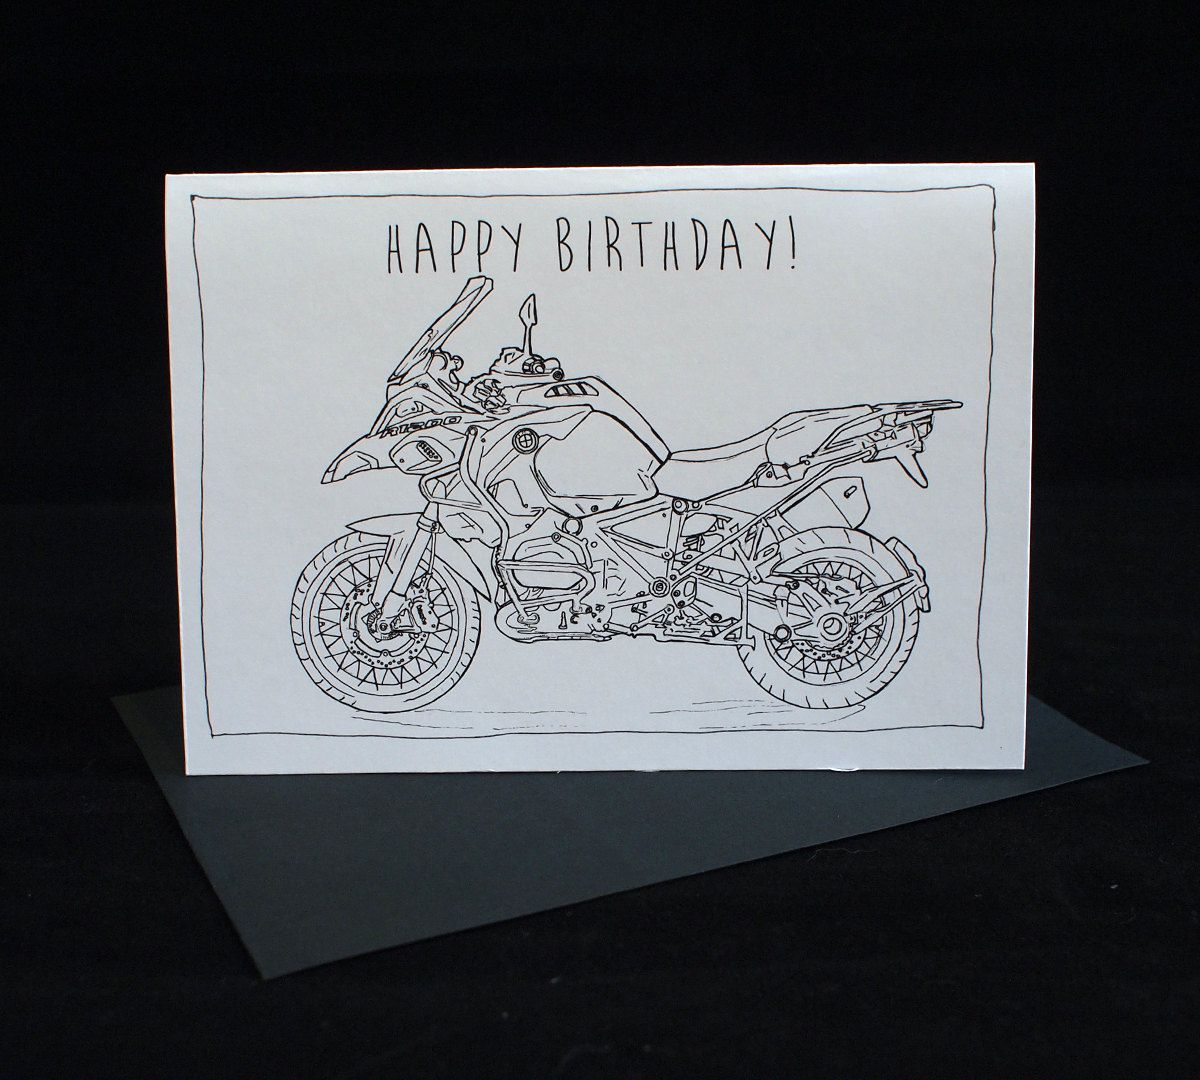 Motorcycle birthday card bmw r1200gs a6 6 x 4 103mm x bmw r1200gs black white motorcycle birthday card a6 6 x 4 bookmarktalkfo Choice Image